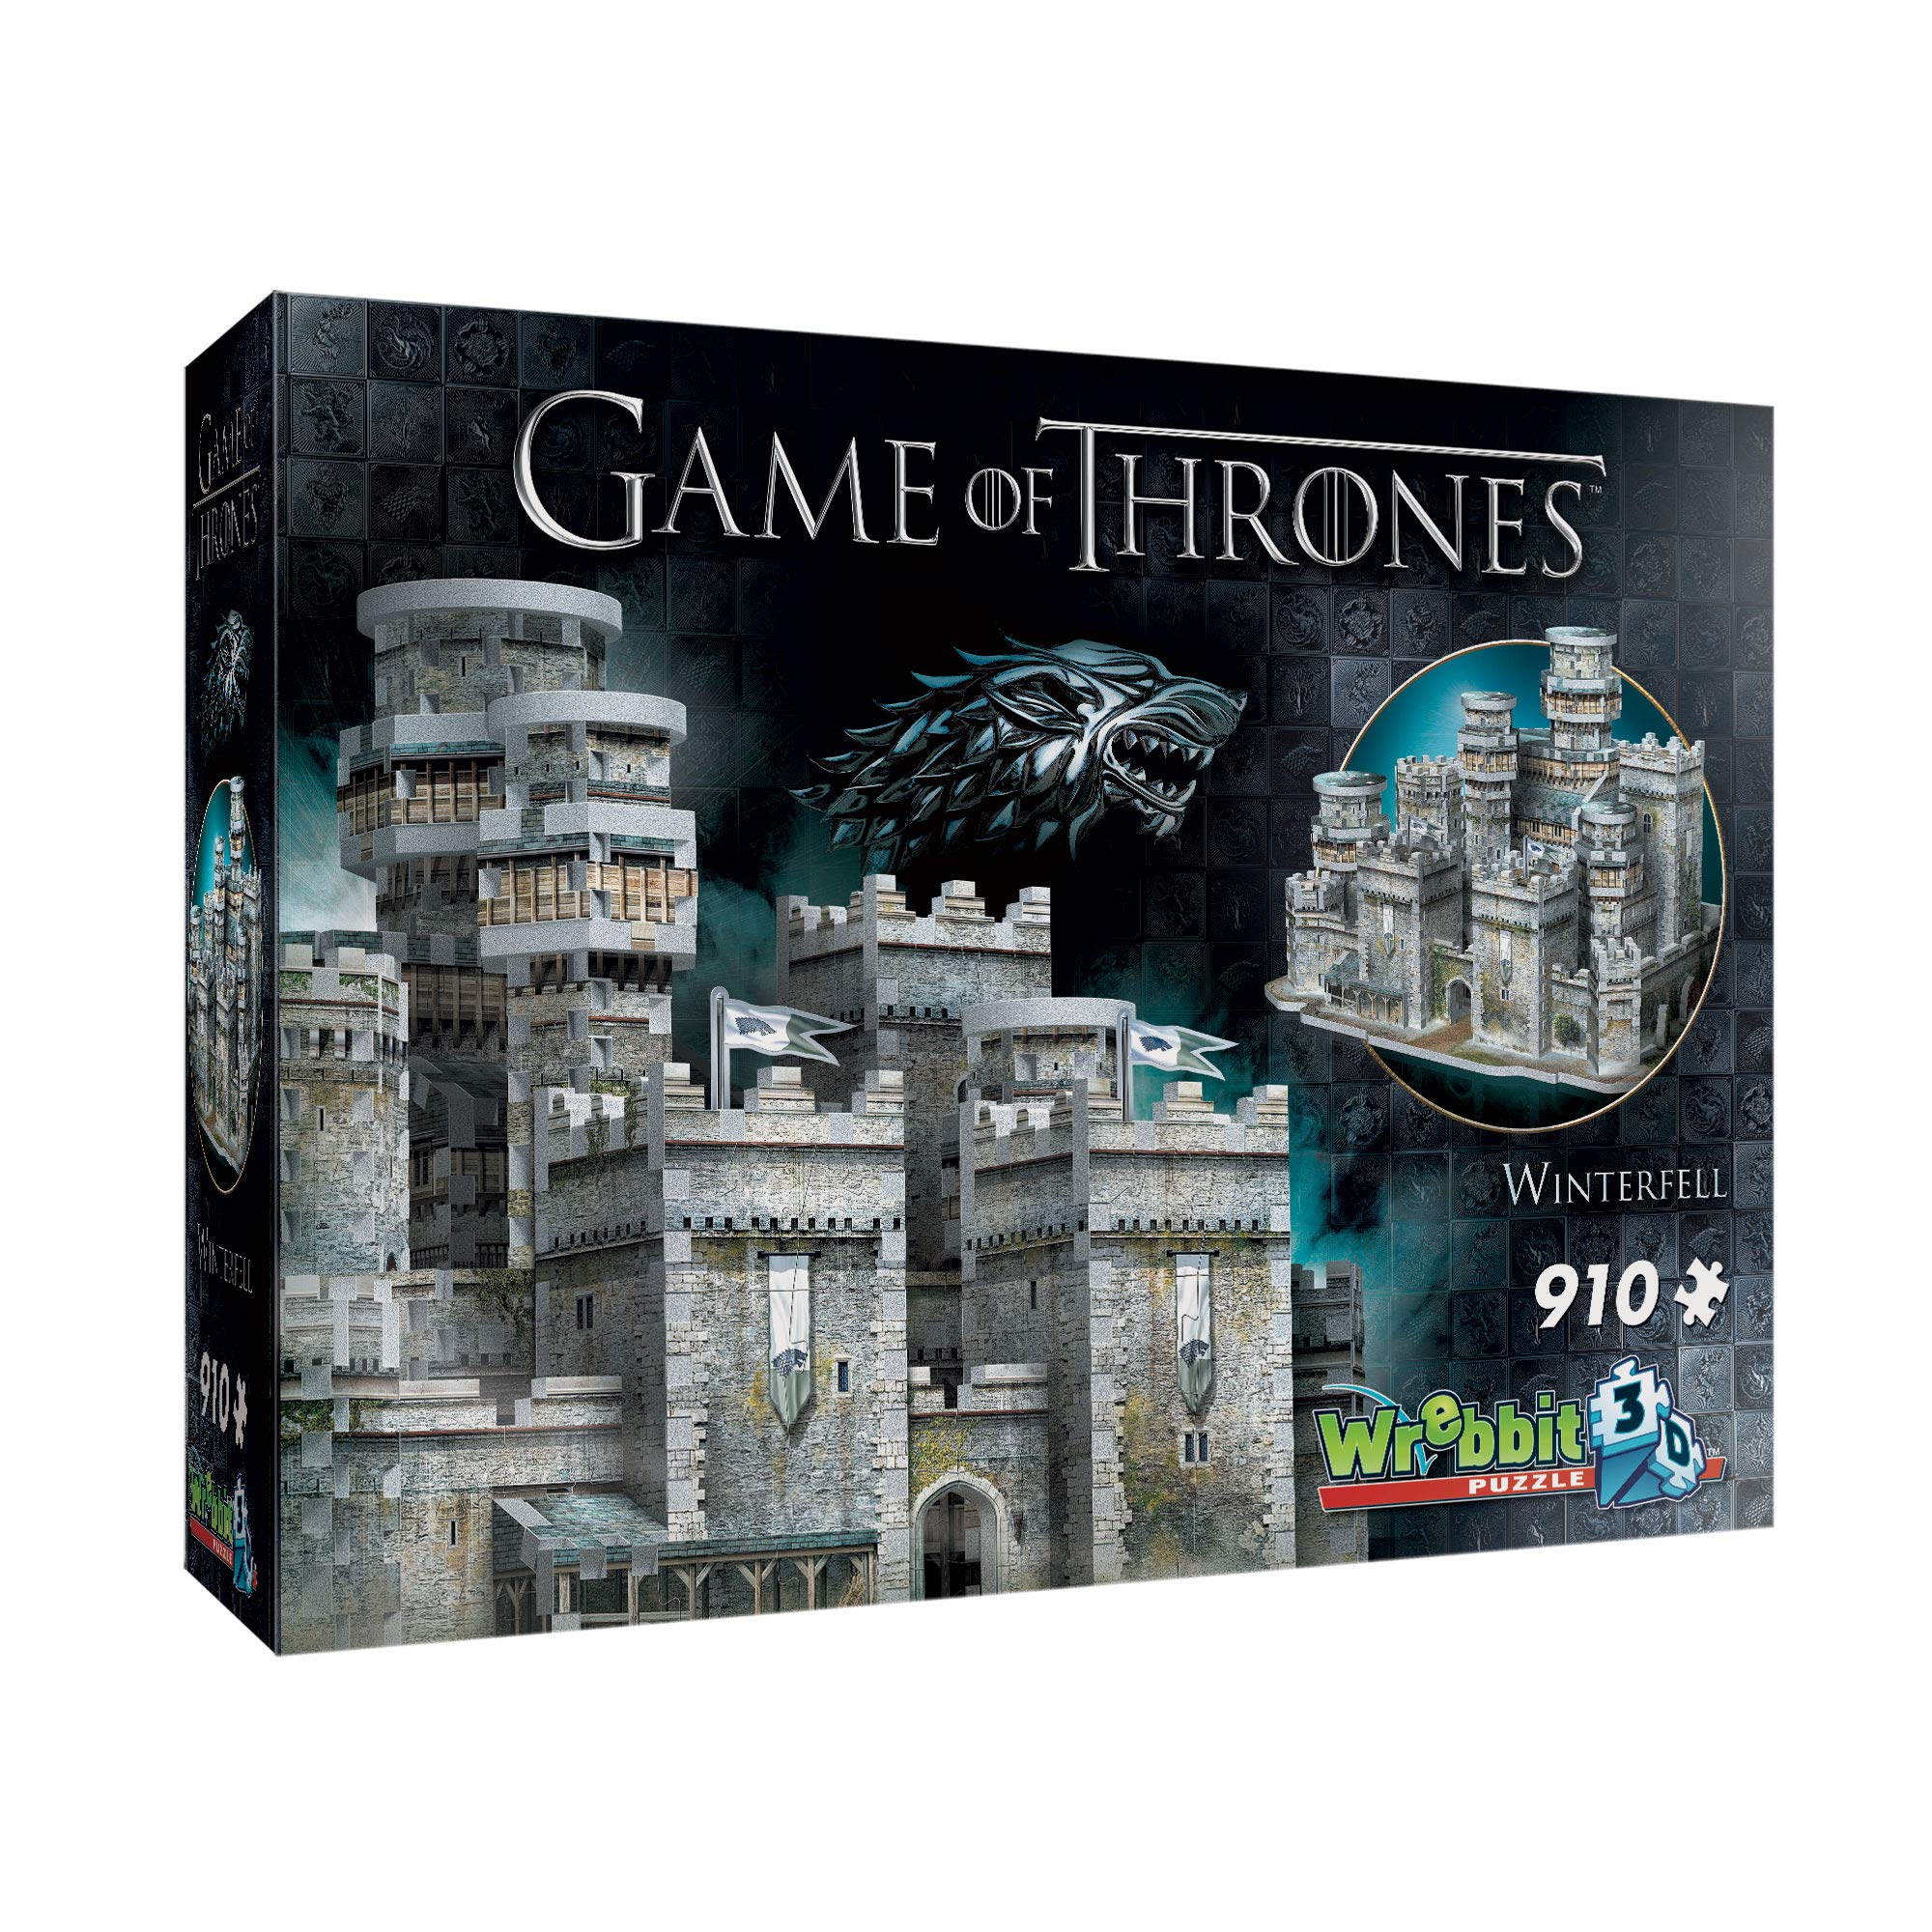 Wrebbit 3D - Game of Thrones Winterfell 3D Jigsaw Puzzle - 910Piece by WREBBIT 3D